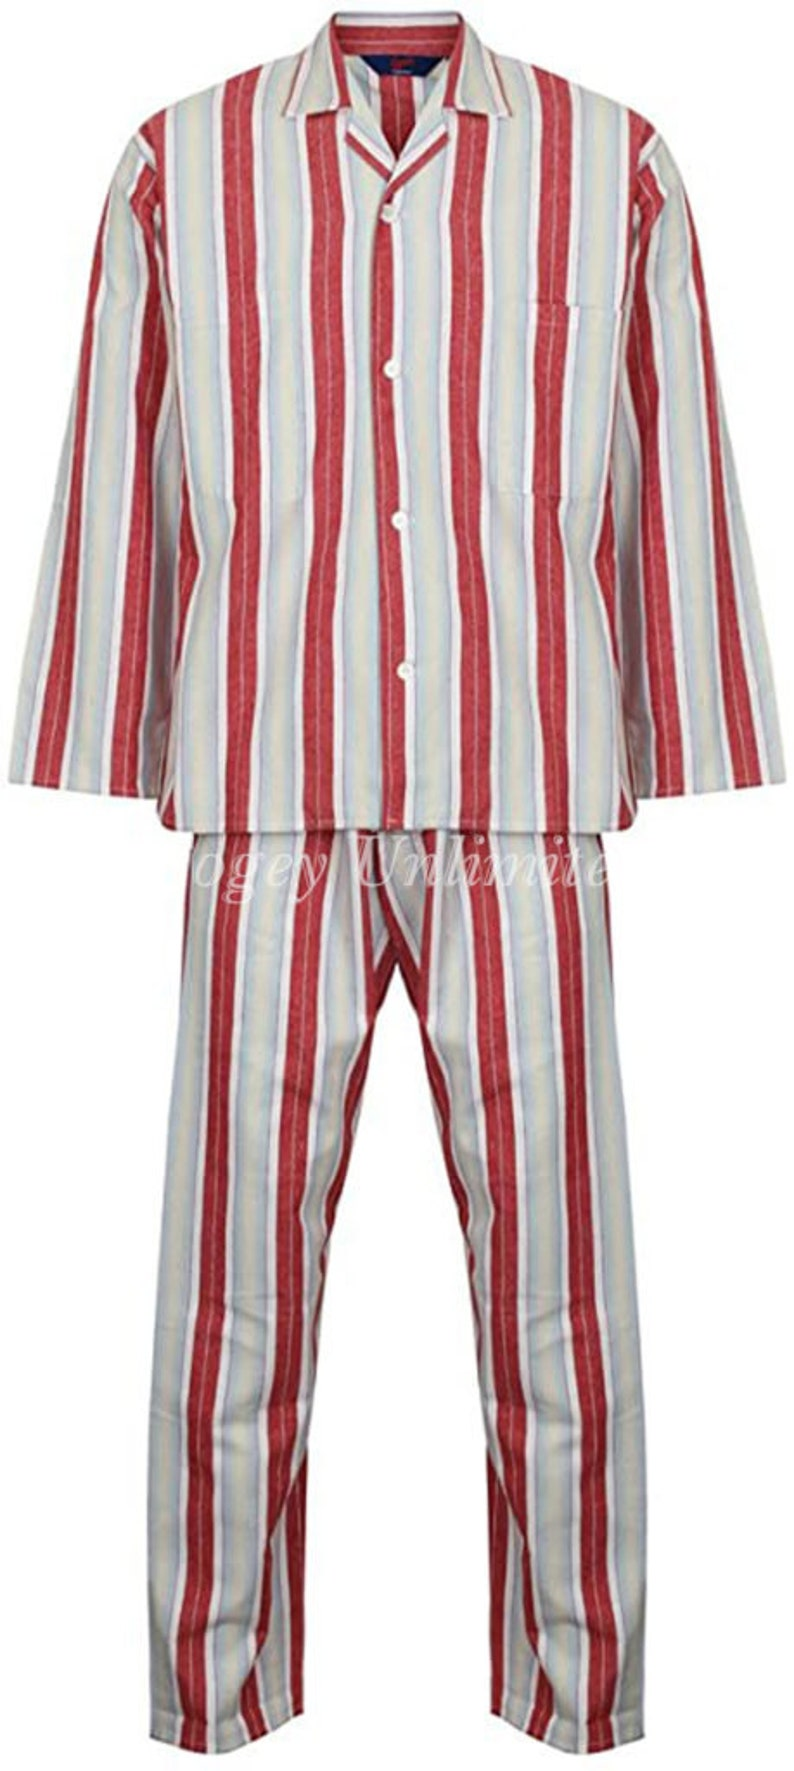 1930s Men's Clothing Traditional style Tie Cord waist Pyjamas. Brushed Flannel.. By Somax Red $71.00 AT vintagedancer.com